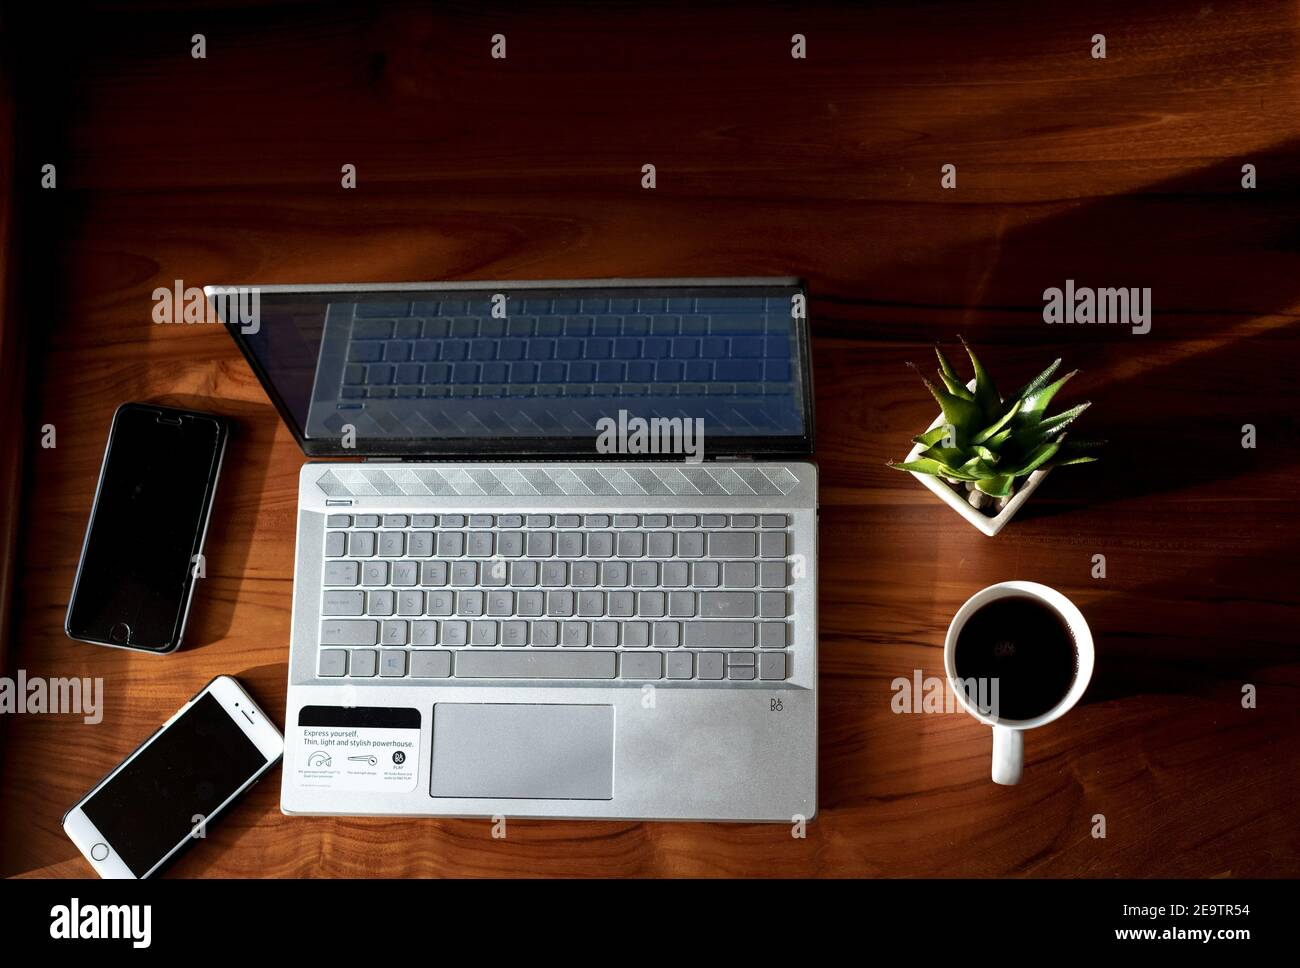 Working from home with Laptop and Phones with a hot cup of coffee beside and a green plant Stock Photo